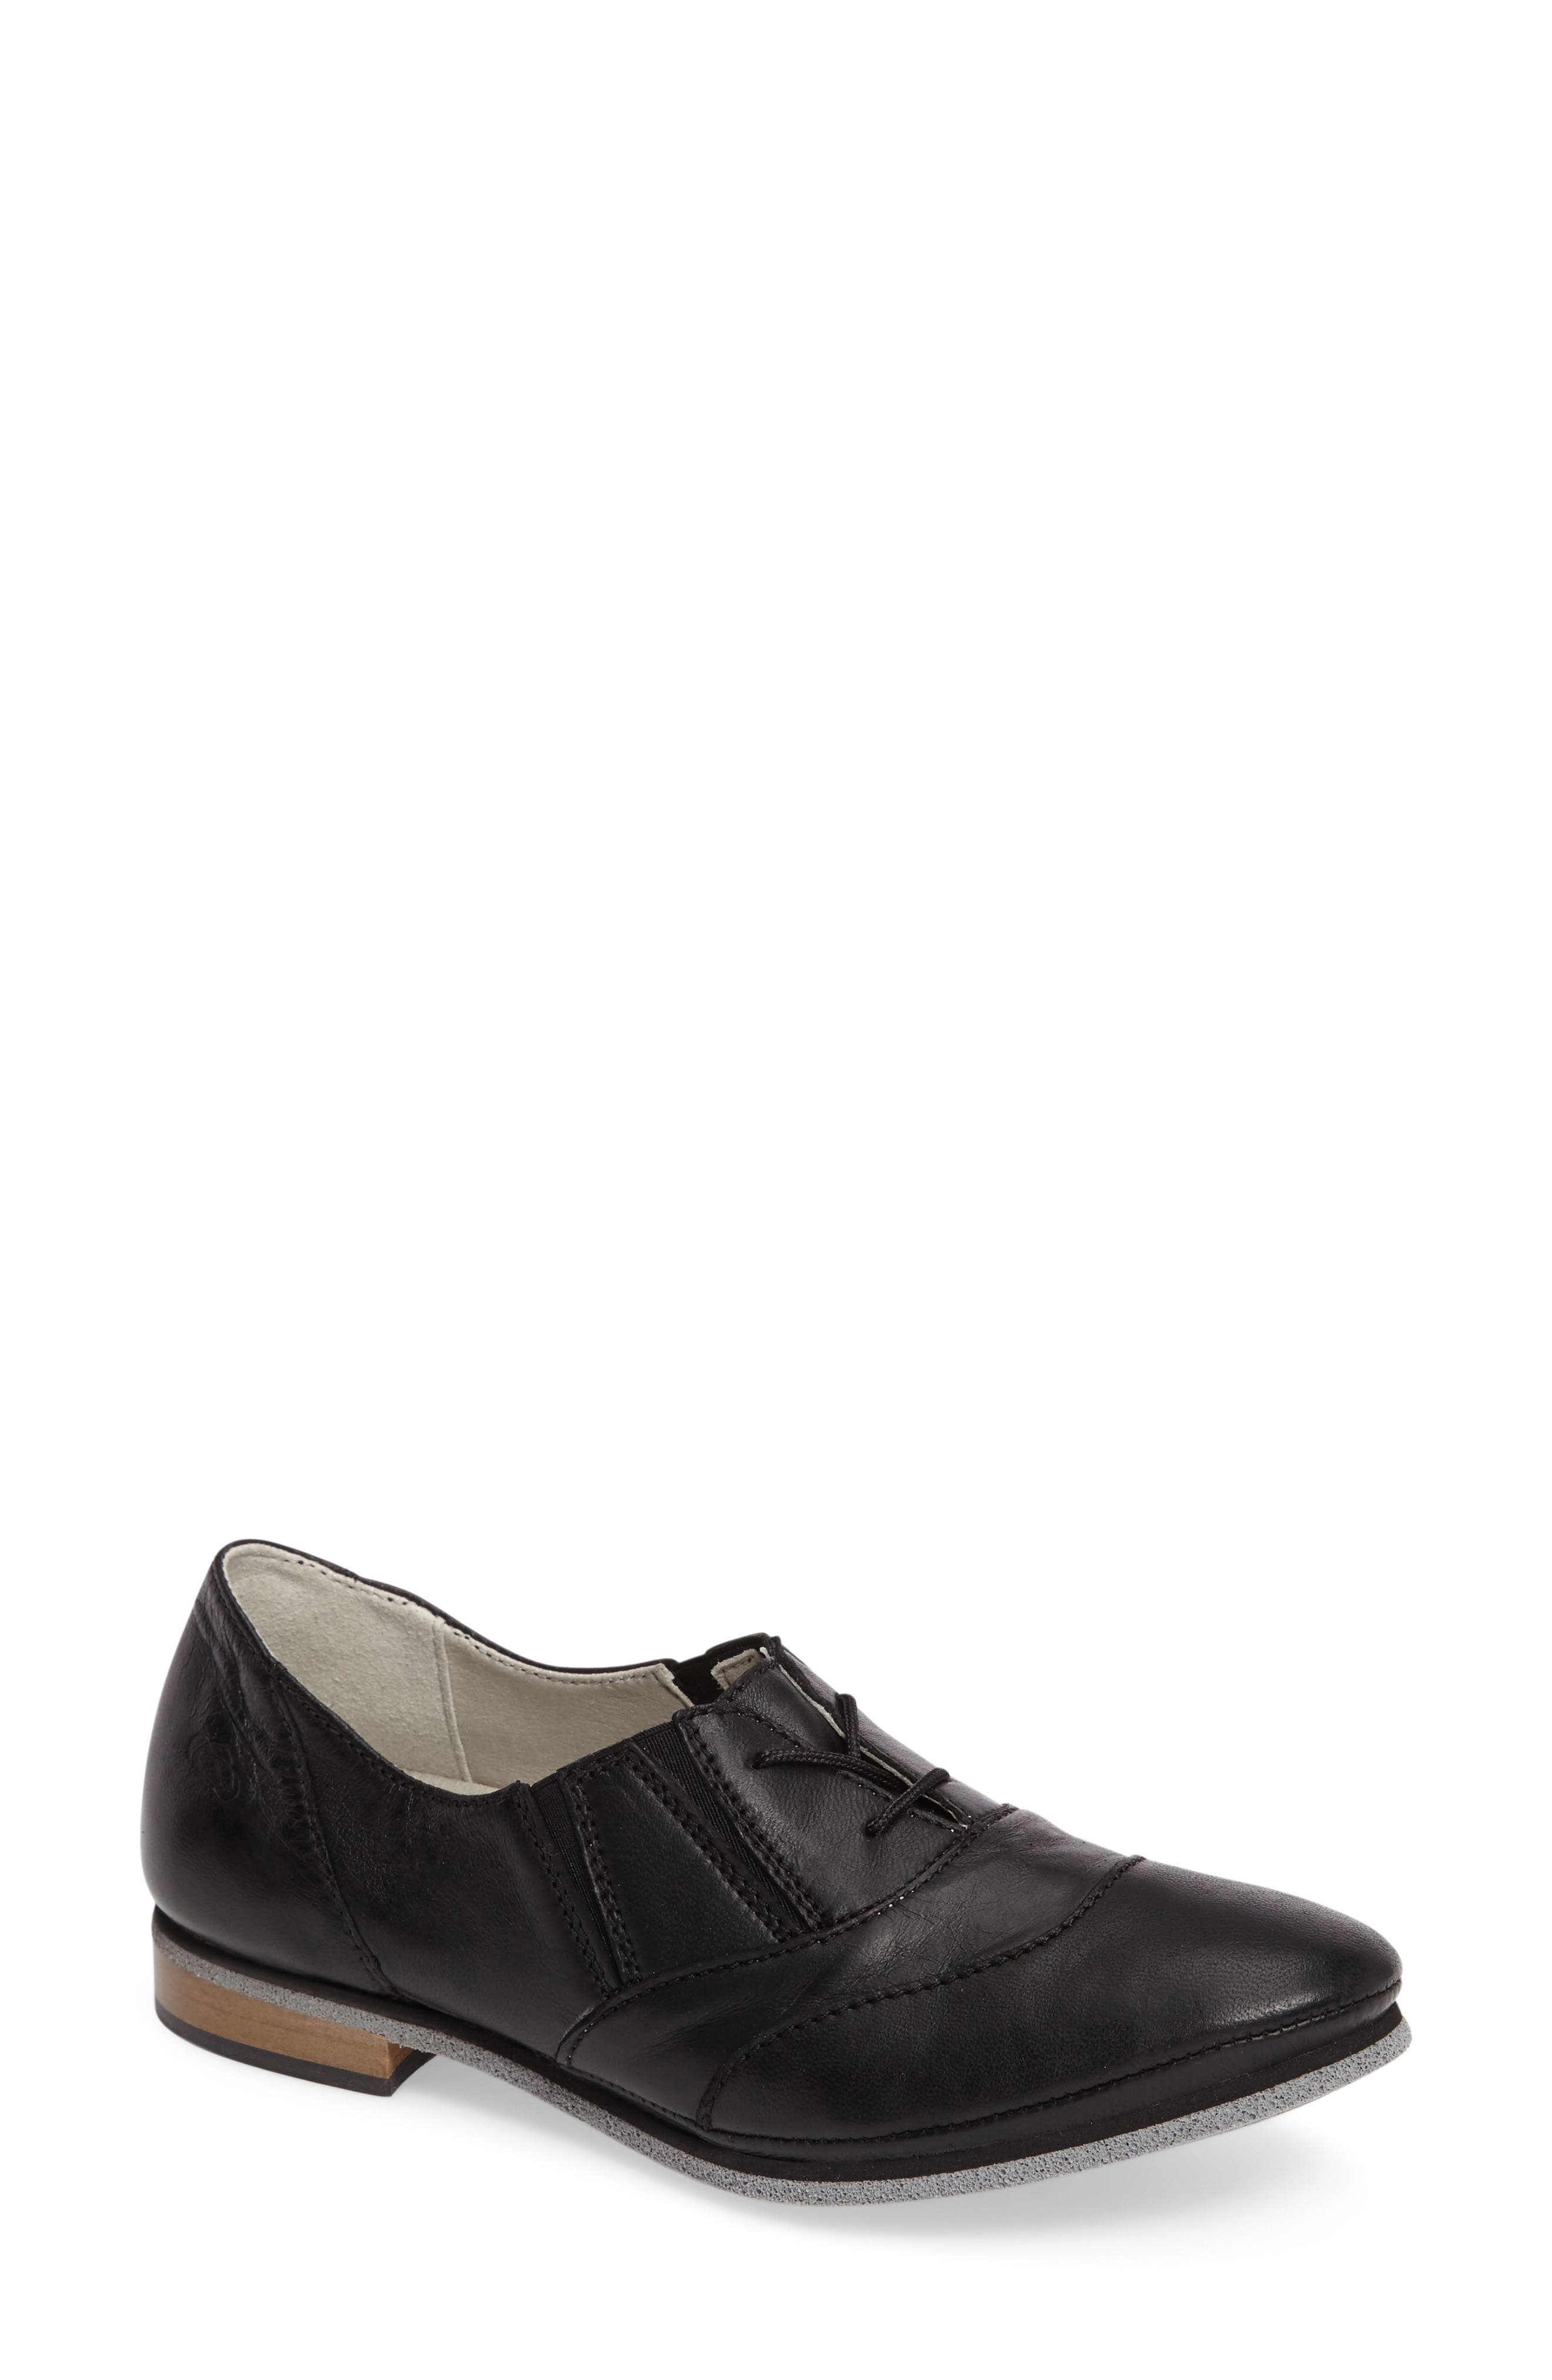 Bliss Lace-Up Oxford,                             Main thumbnail 1, color,                             001